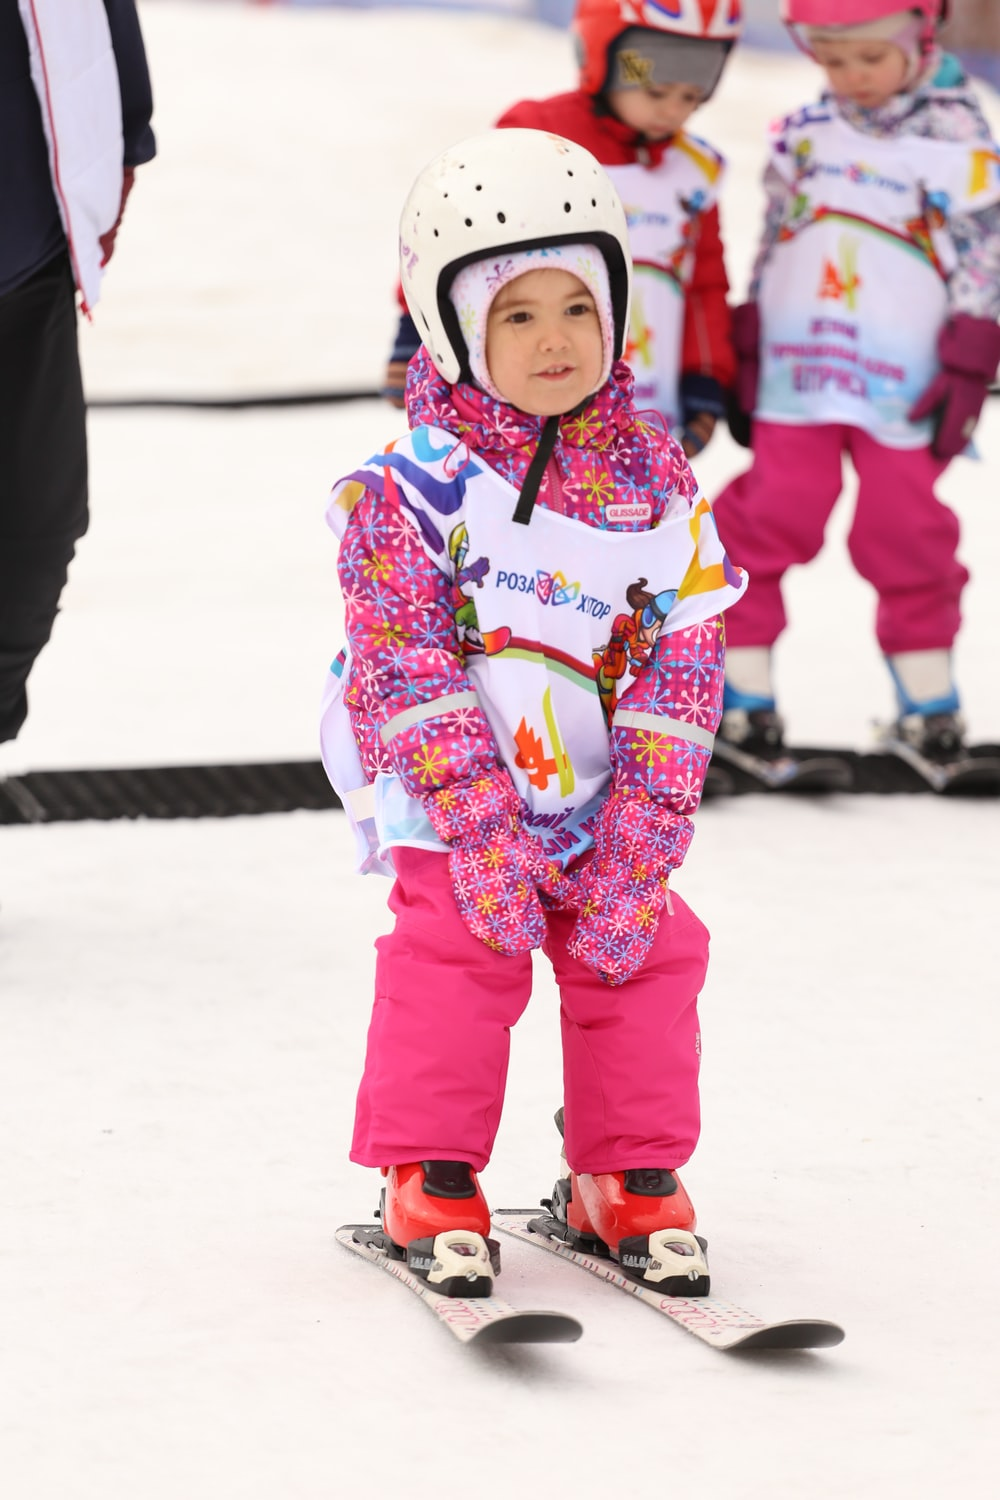 pink and white ski gear